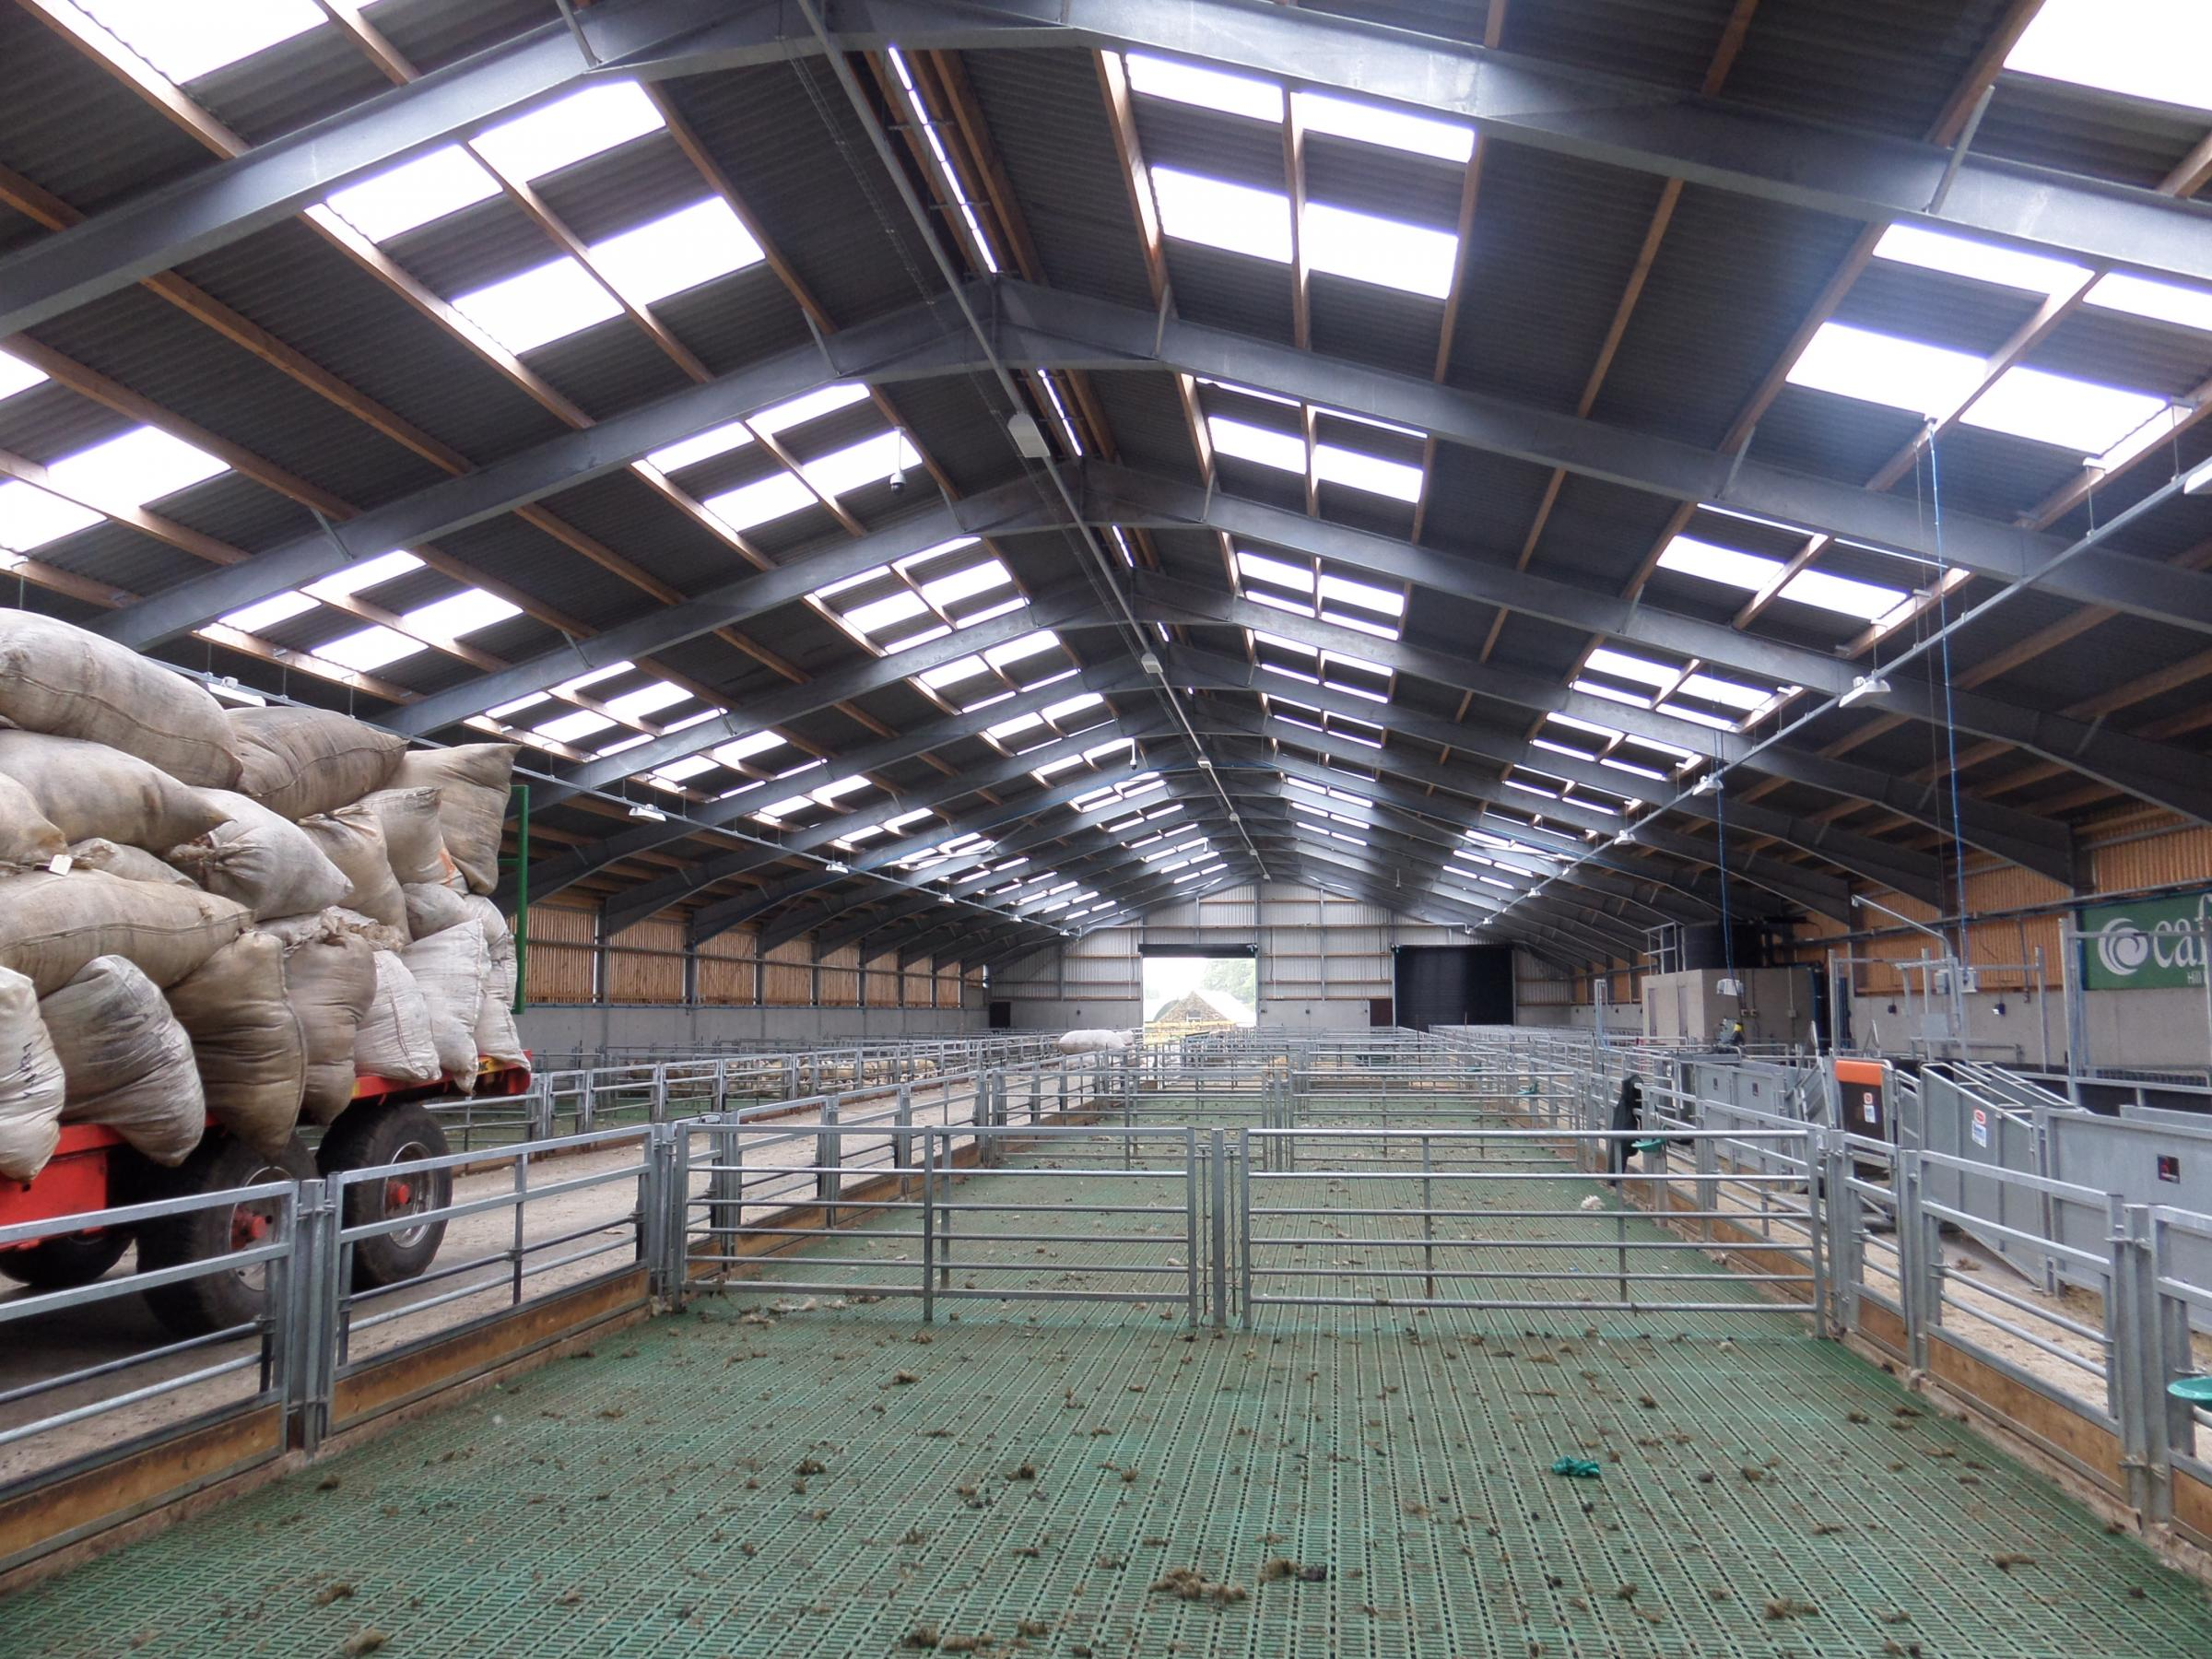 The new and improved shed can house 750 ewes at one time and includes handling facilities for the entire 1100 flock